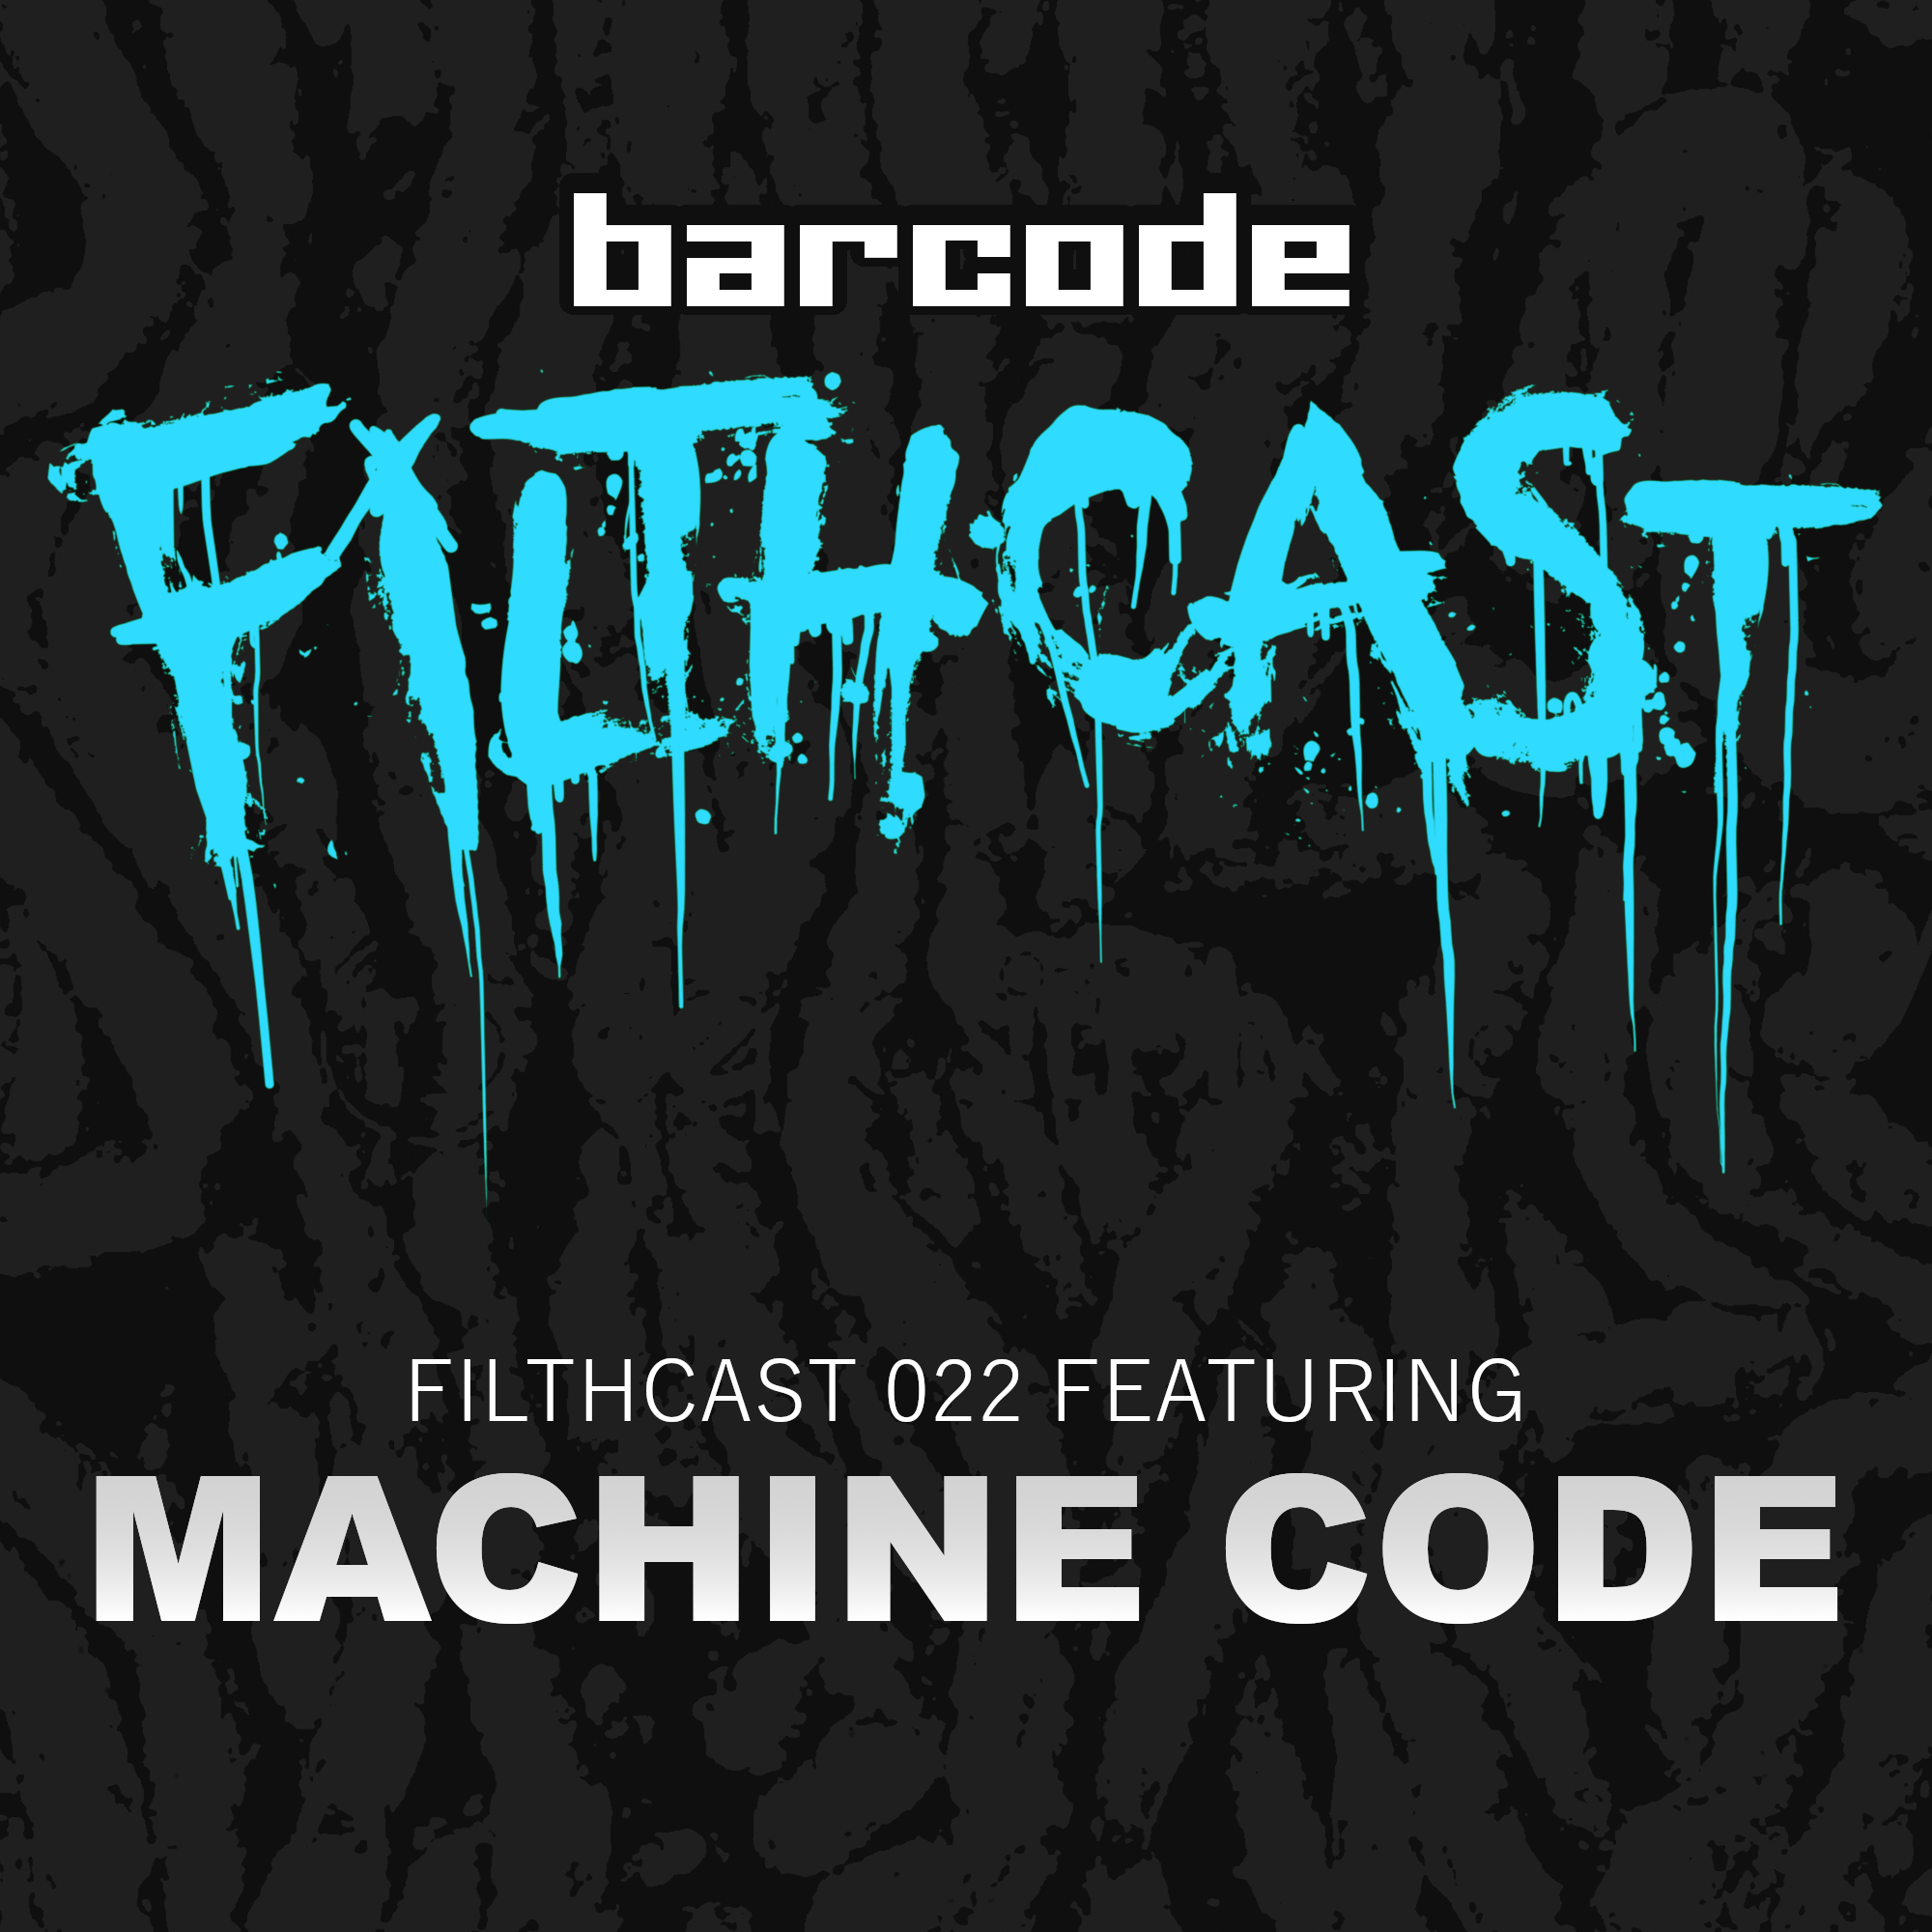 Machine Code is a collaborative effort between Dean Rodell and Current Value. Focused on the quality of musical output rather than a specific genre, Machine Code's Filthcast must be heard to be understood.